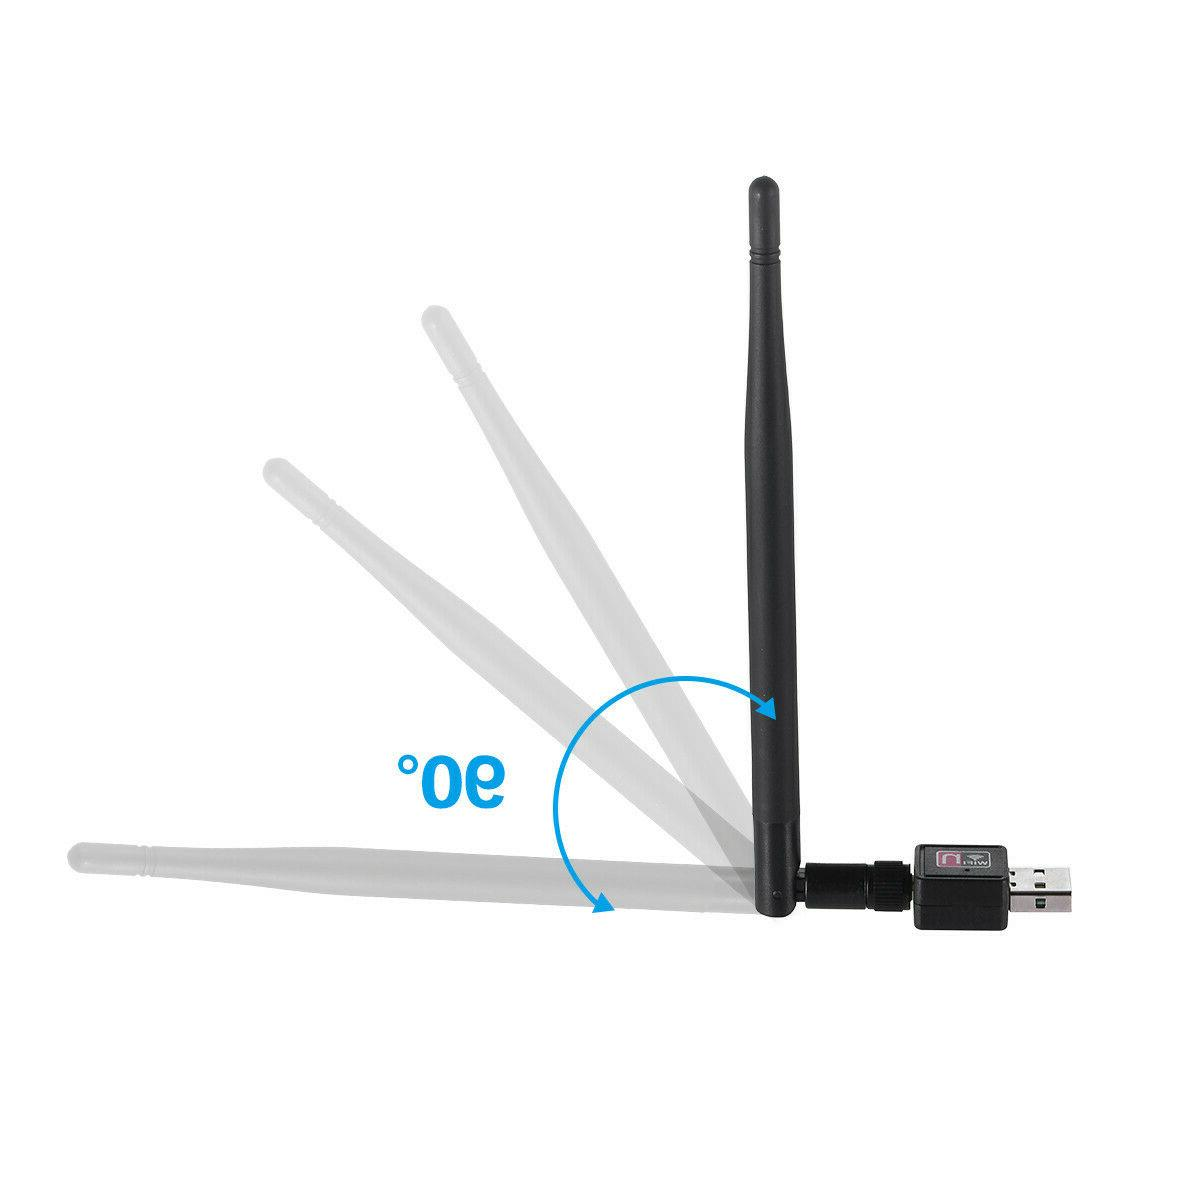 Internet Router Network LAN Card Dongle Antenna